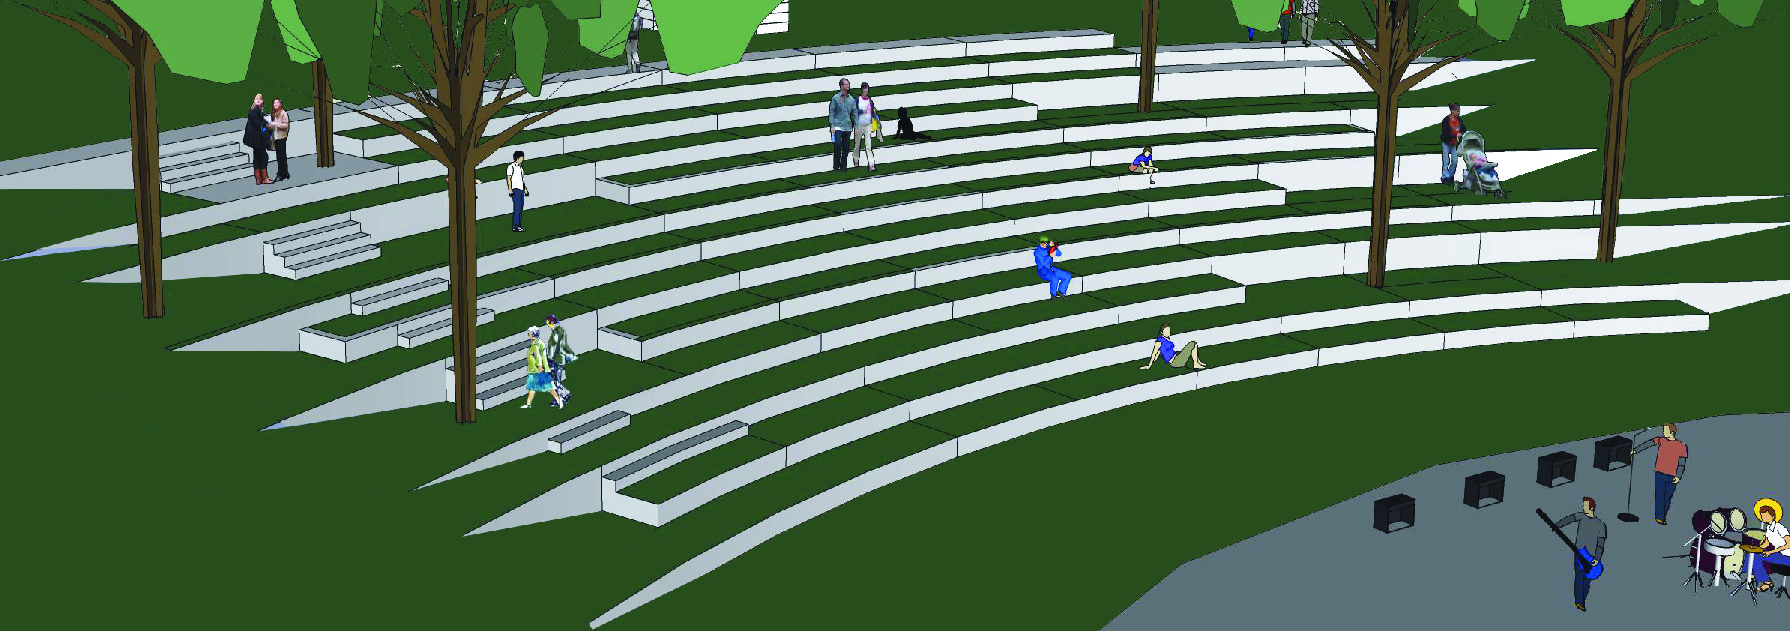 Rendering of the proposed amphitheater.